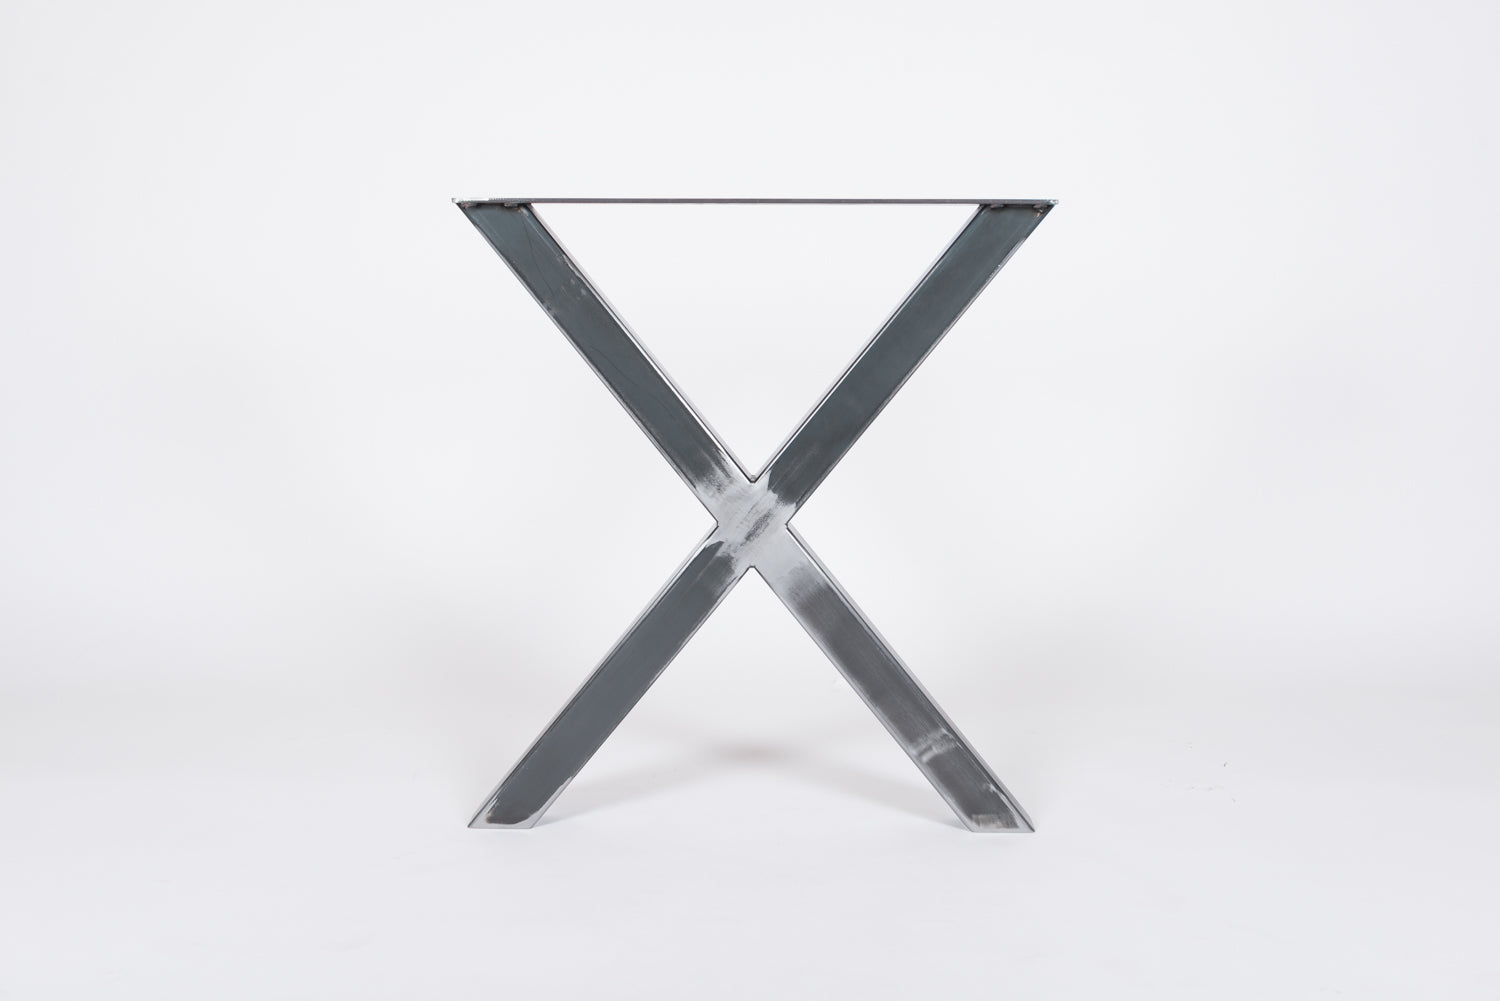 XX - Shape Metal Table Legs (Pair)